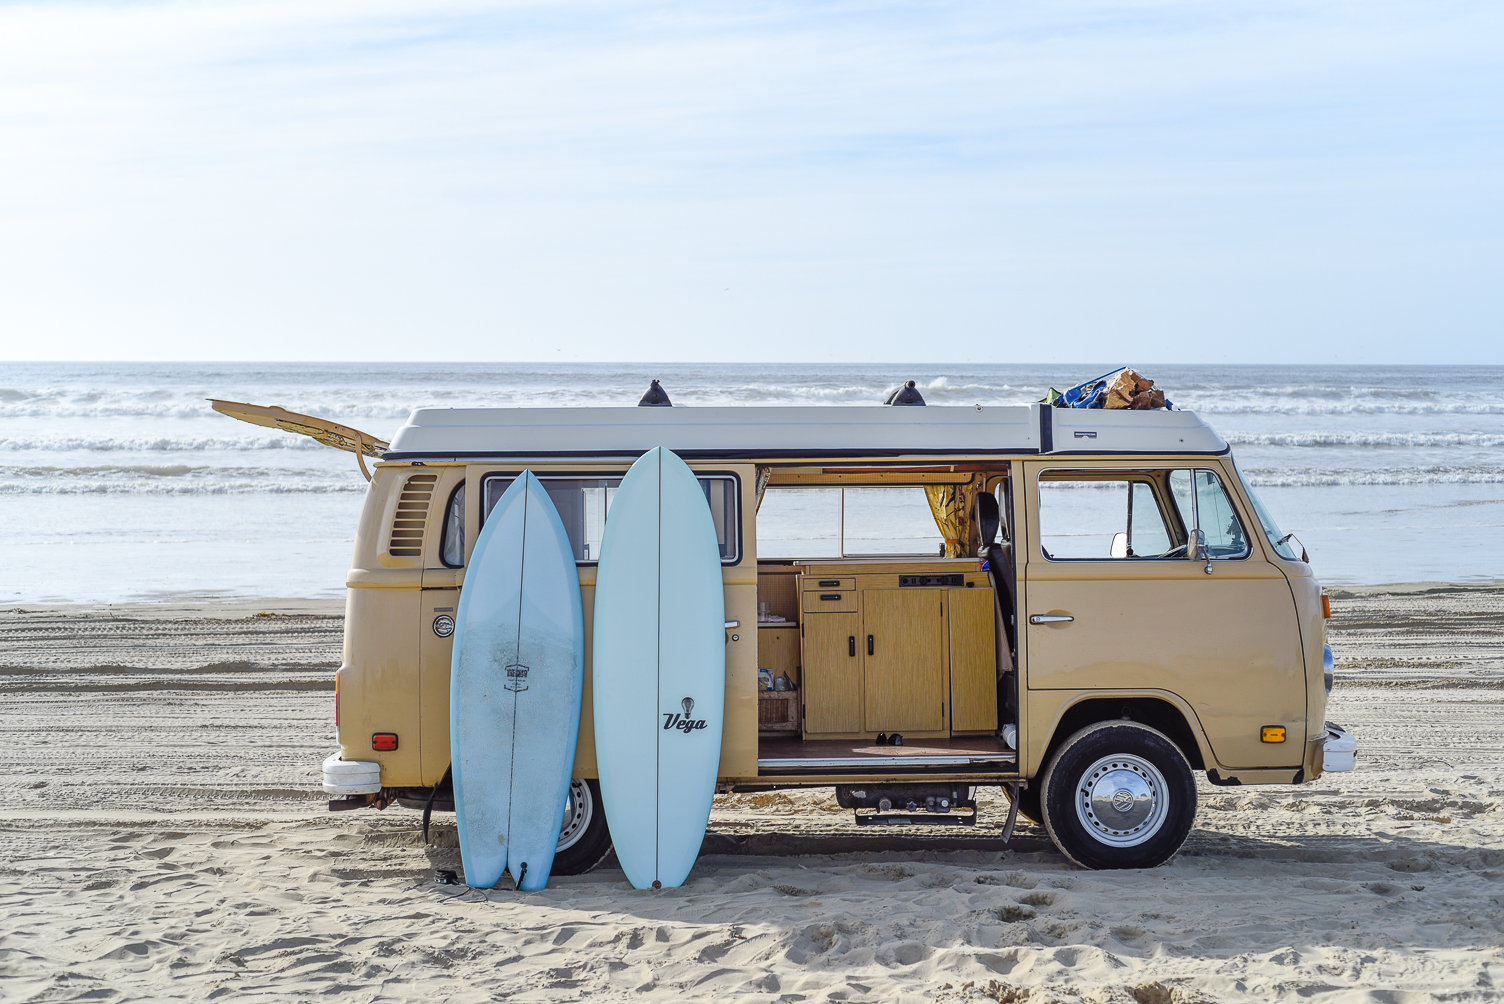 - San Onofre State Beach